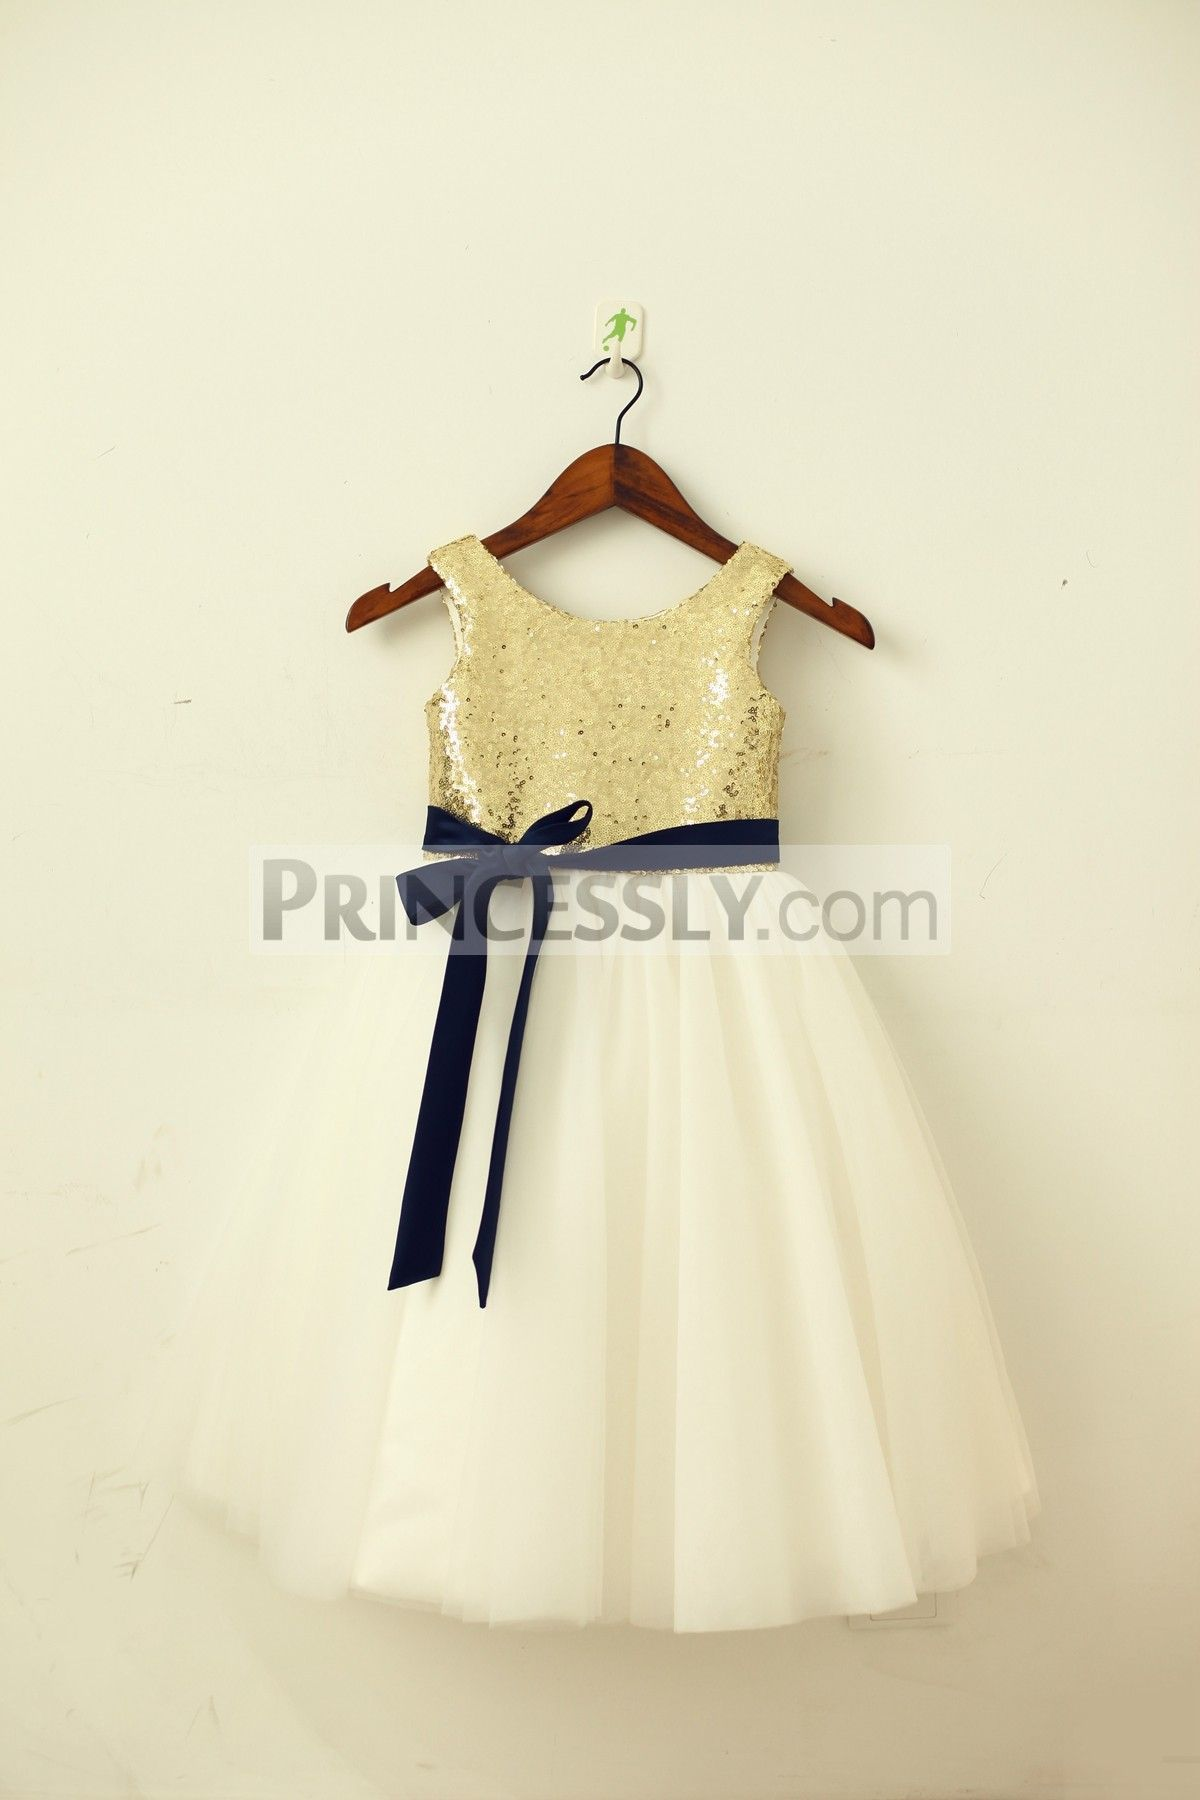 Blush pink girl dress  Blush PinkGold Sequin Ivory Tulle Flower Girl Dress with navy